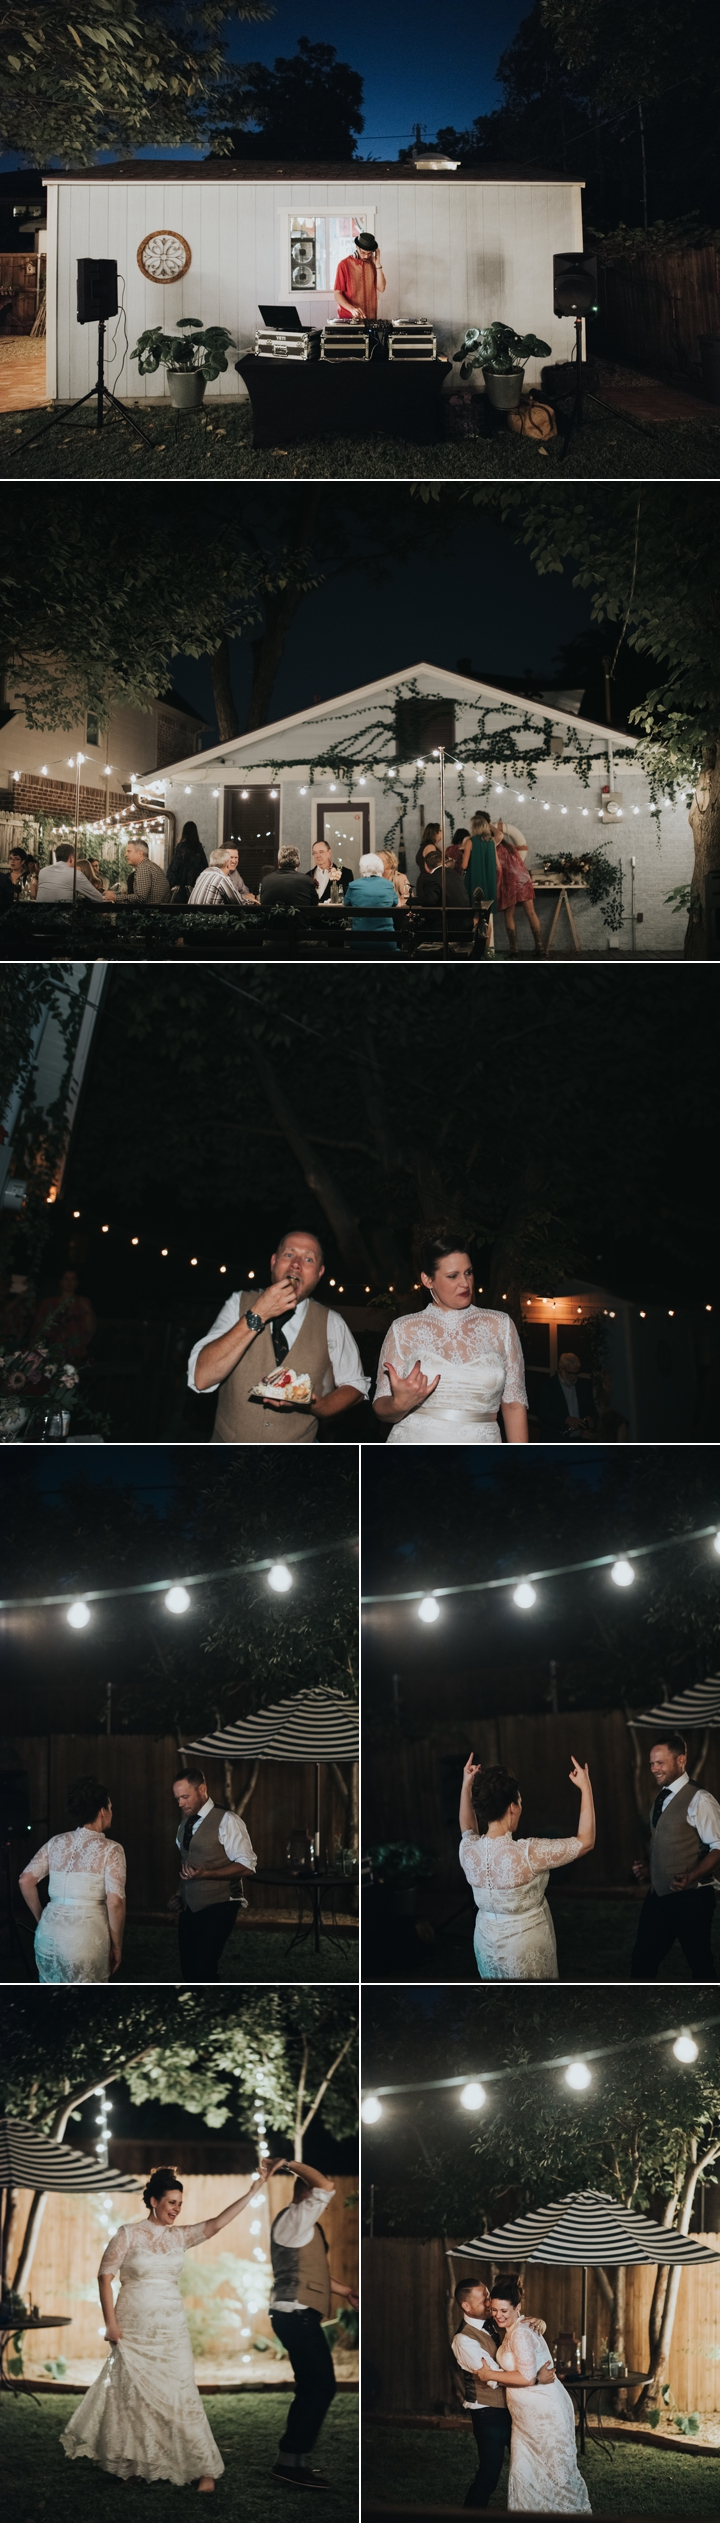 dallas-wedding-photographers-jp 27.jpg